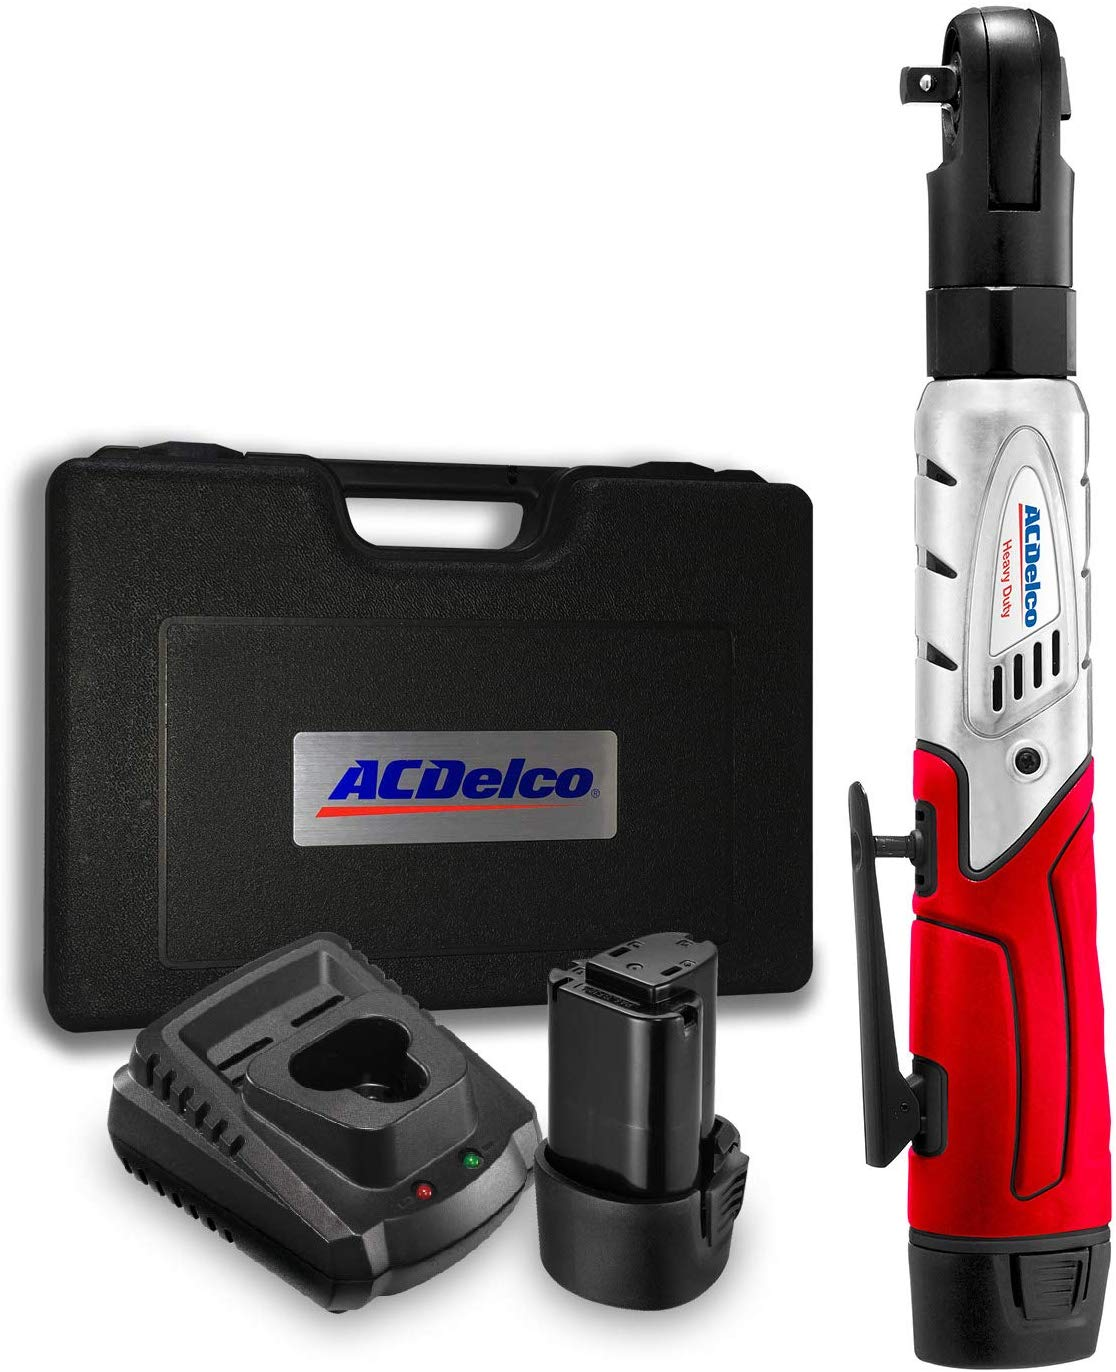 Best Battery Operated Ratchet: ACDelco ARW1201 Ratchet Set